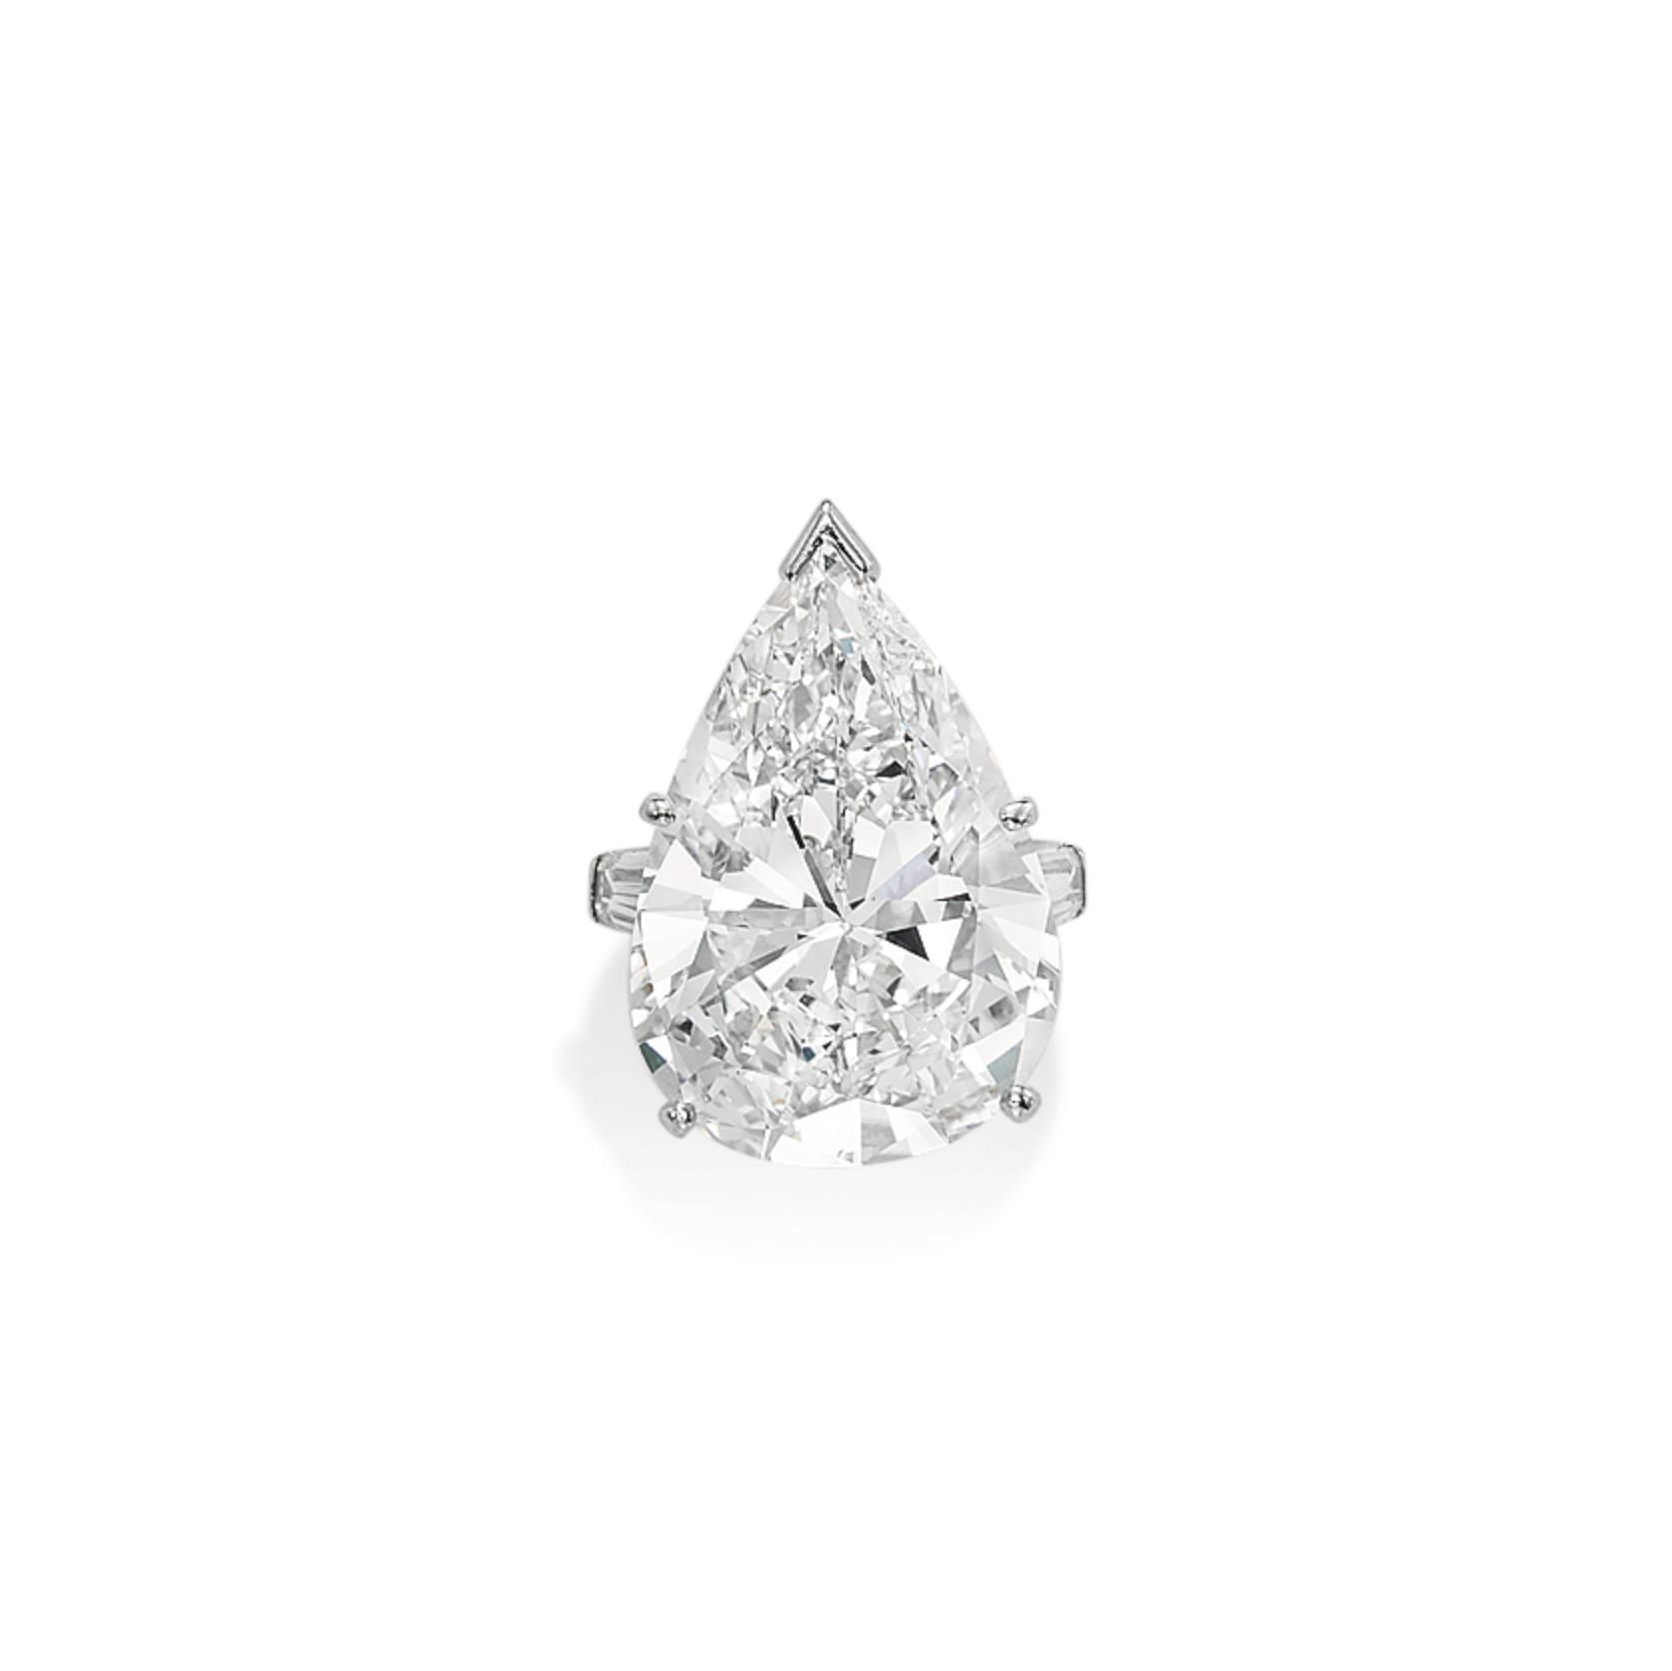 A MAGNIFICENT DIAMOND RING, BY VAN CLEEF & ARPELS